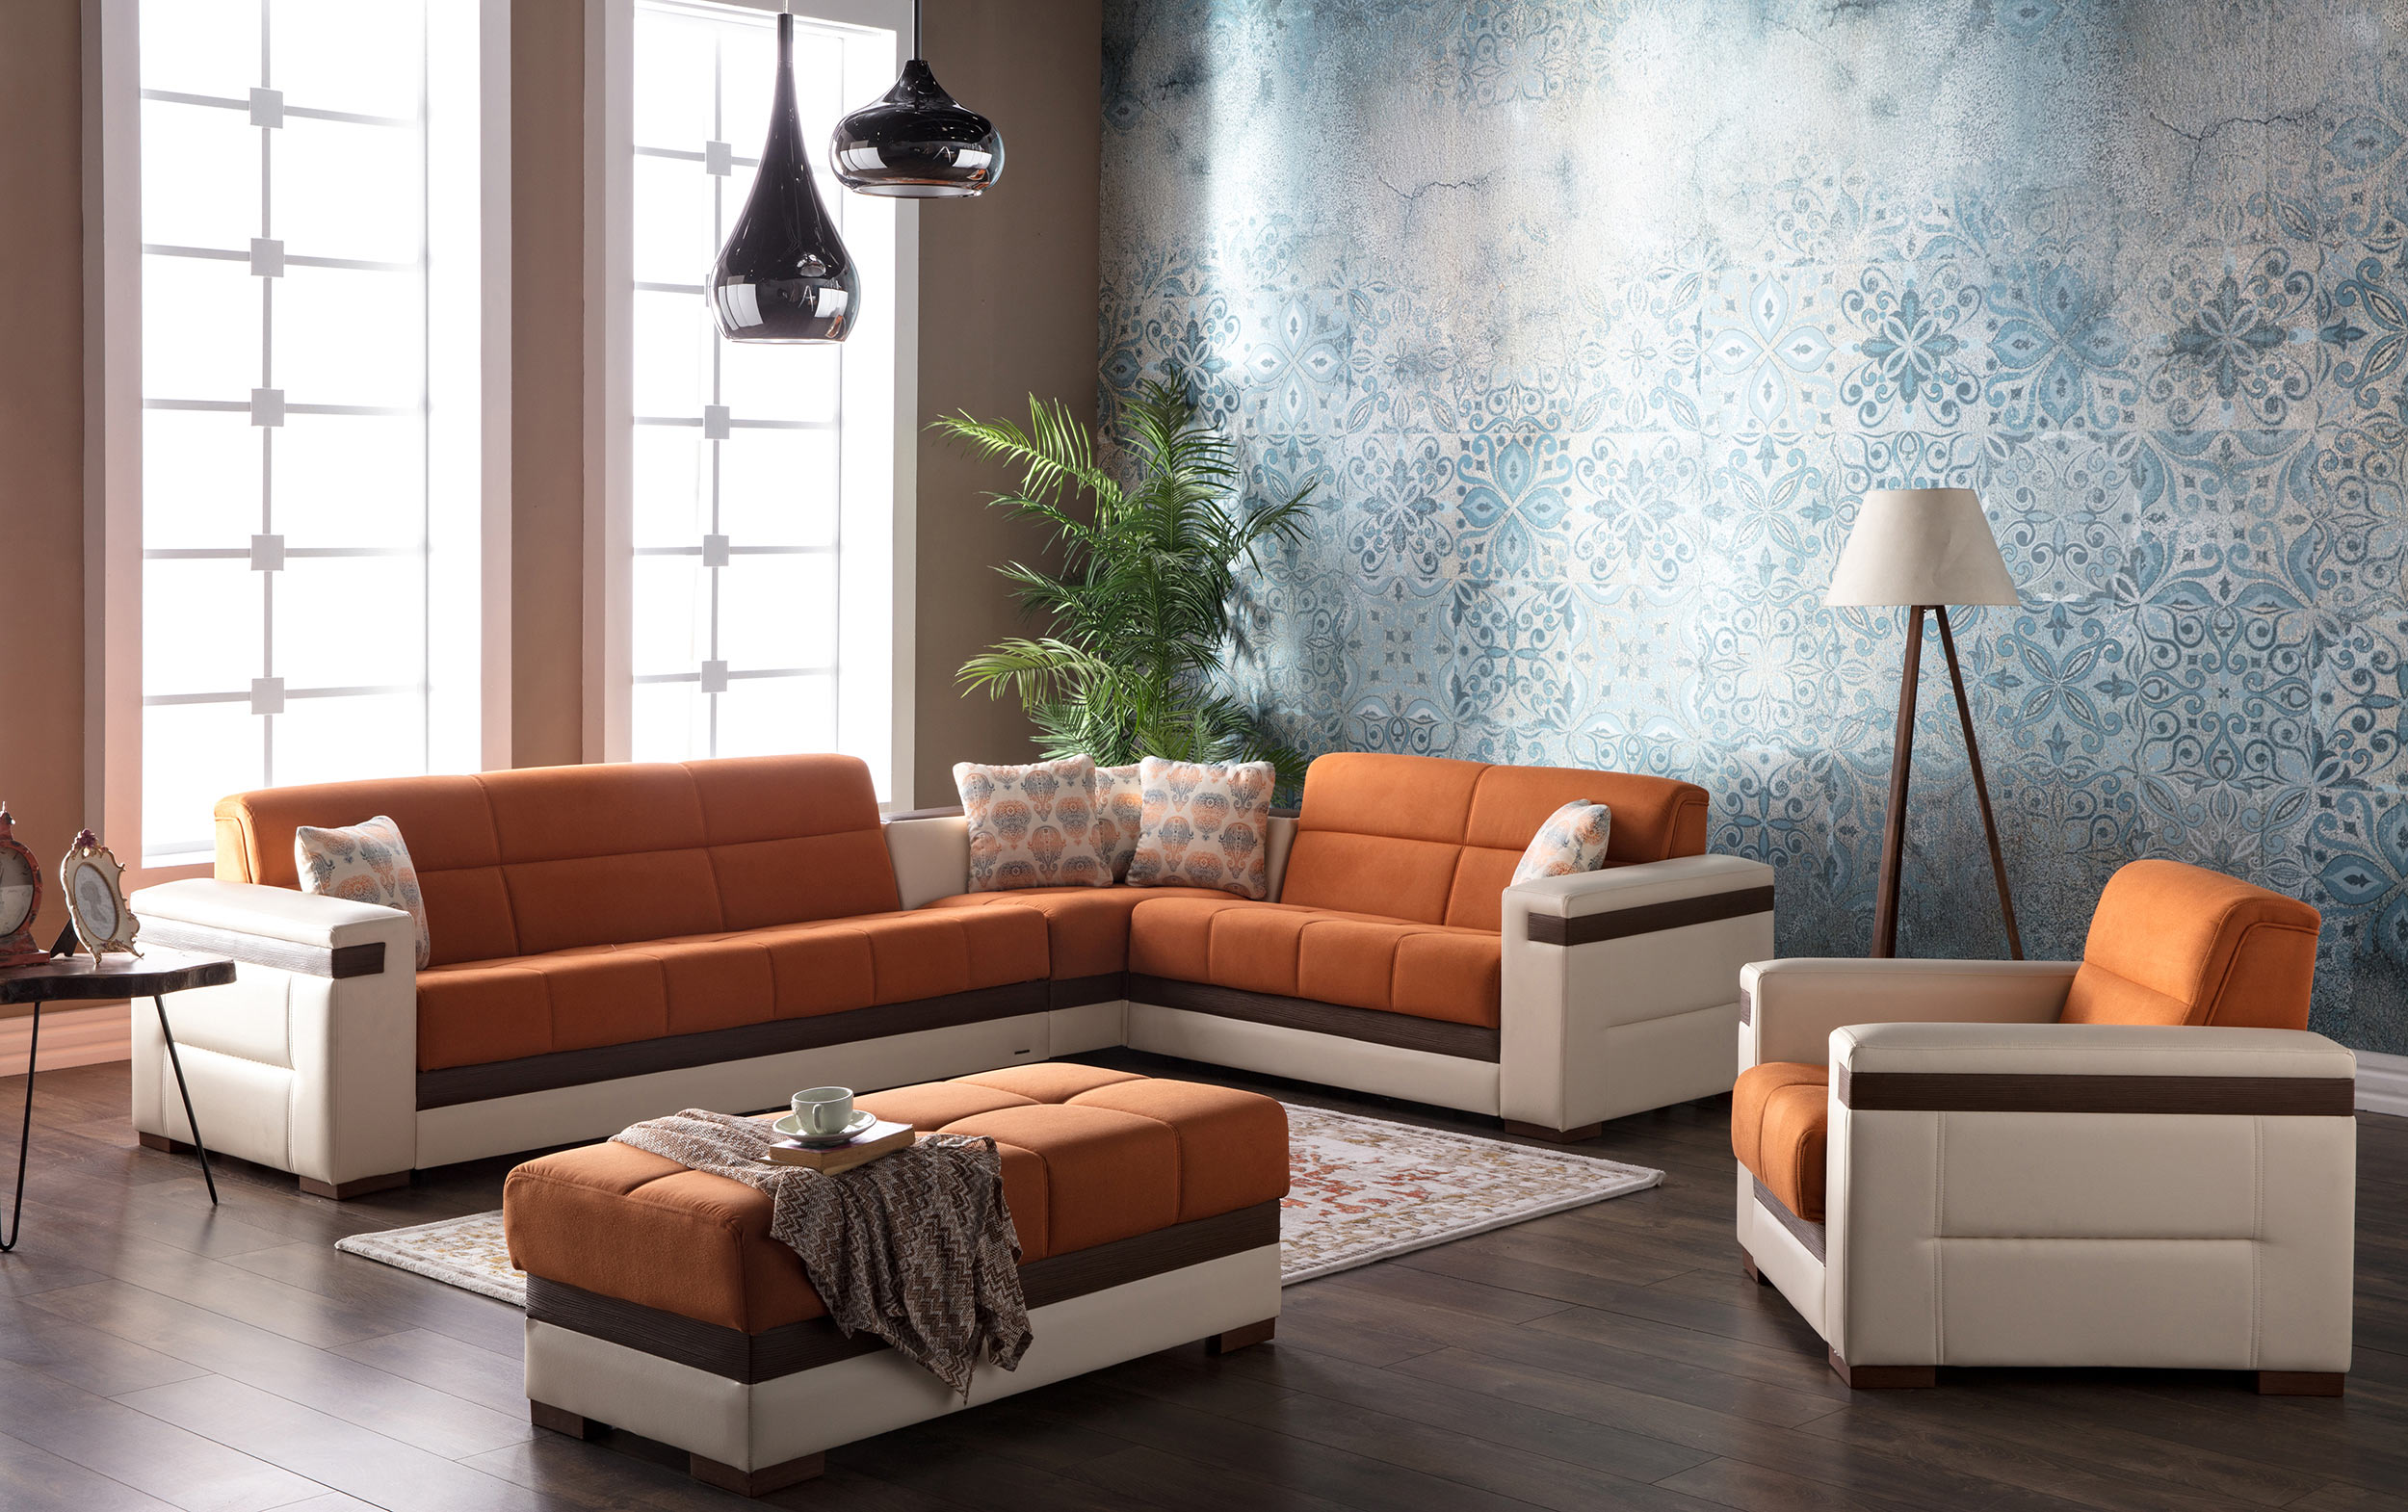 Fine Moon Zigana Orange Sectional Sofa By Istikbal Furniture Andrewgaddart Wooden Chair Designs For Living Room Andrewgaddartcom